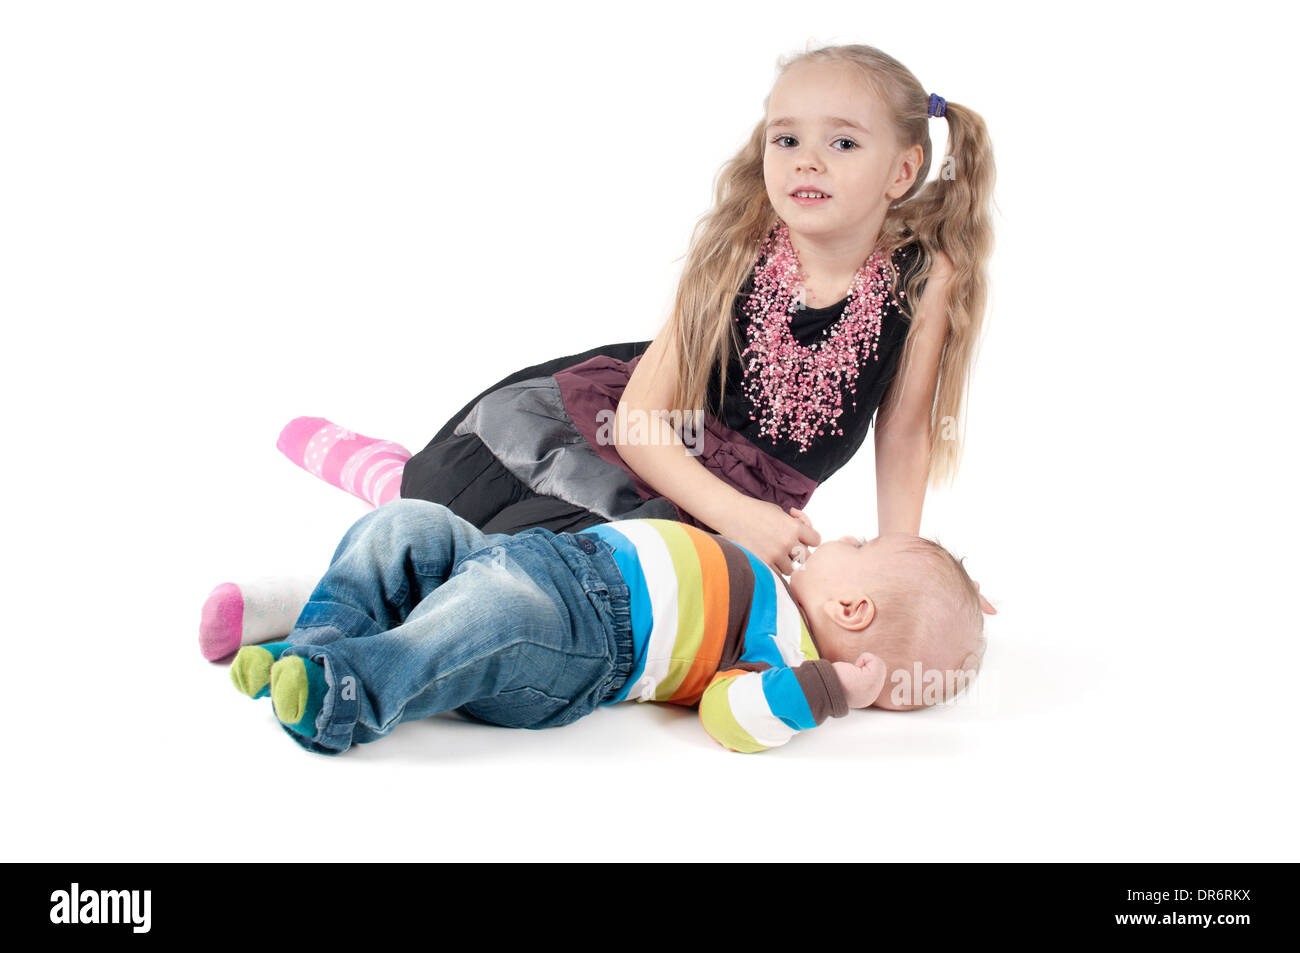 Newborn baby with sister - Stock Image